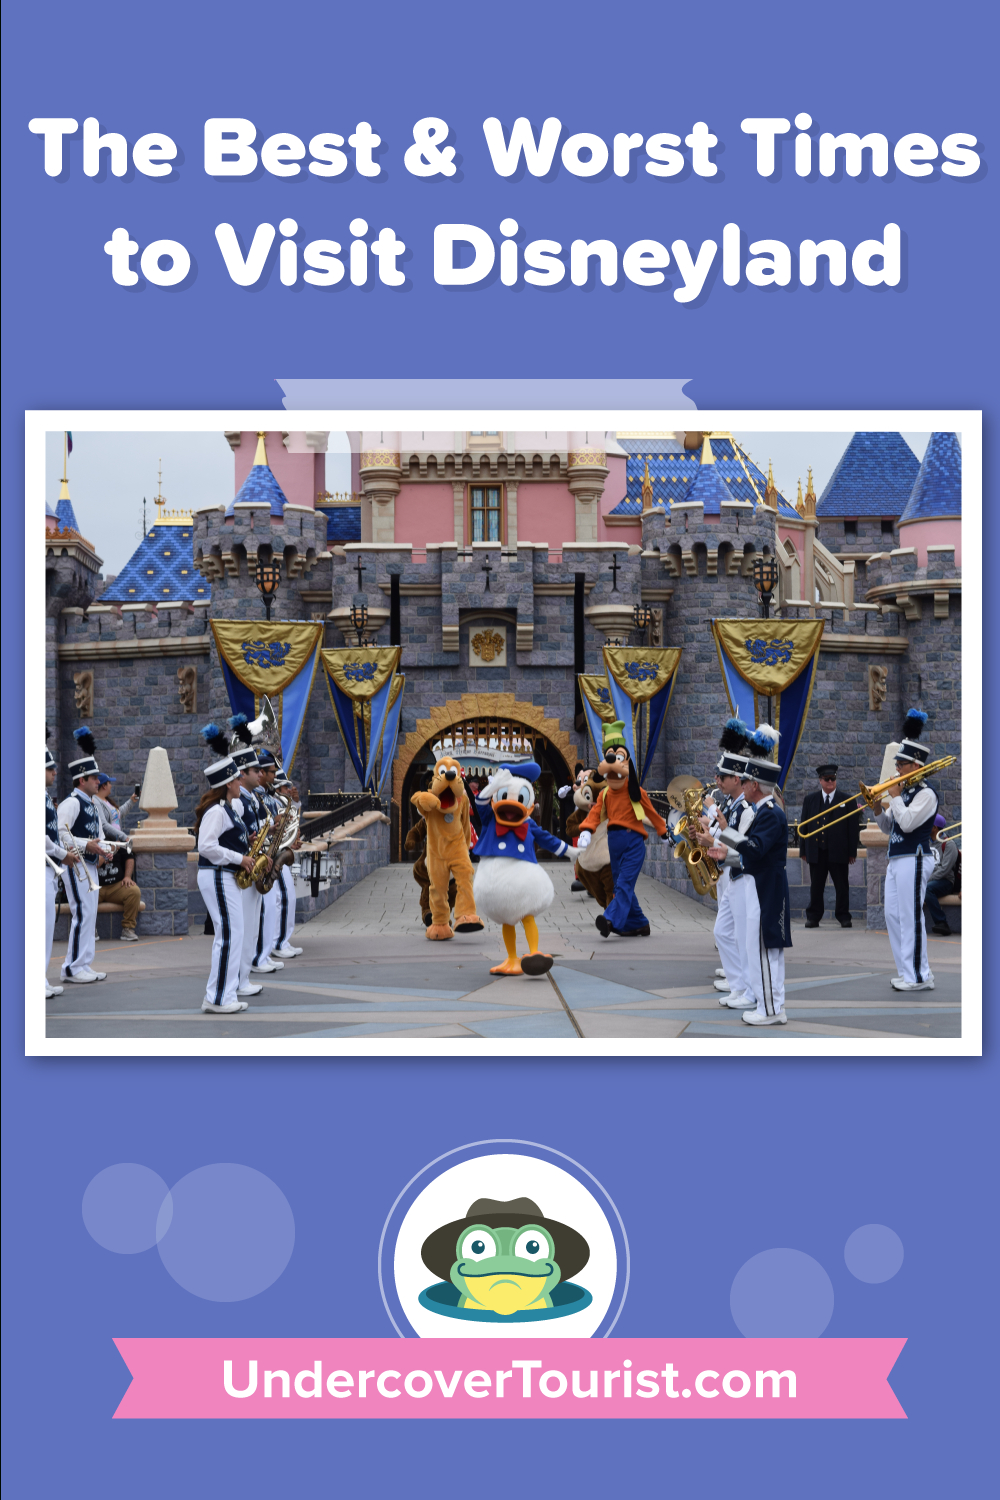 The Best Time To Visit Disneyland In 2020 And 2021